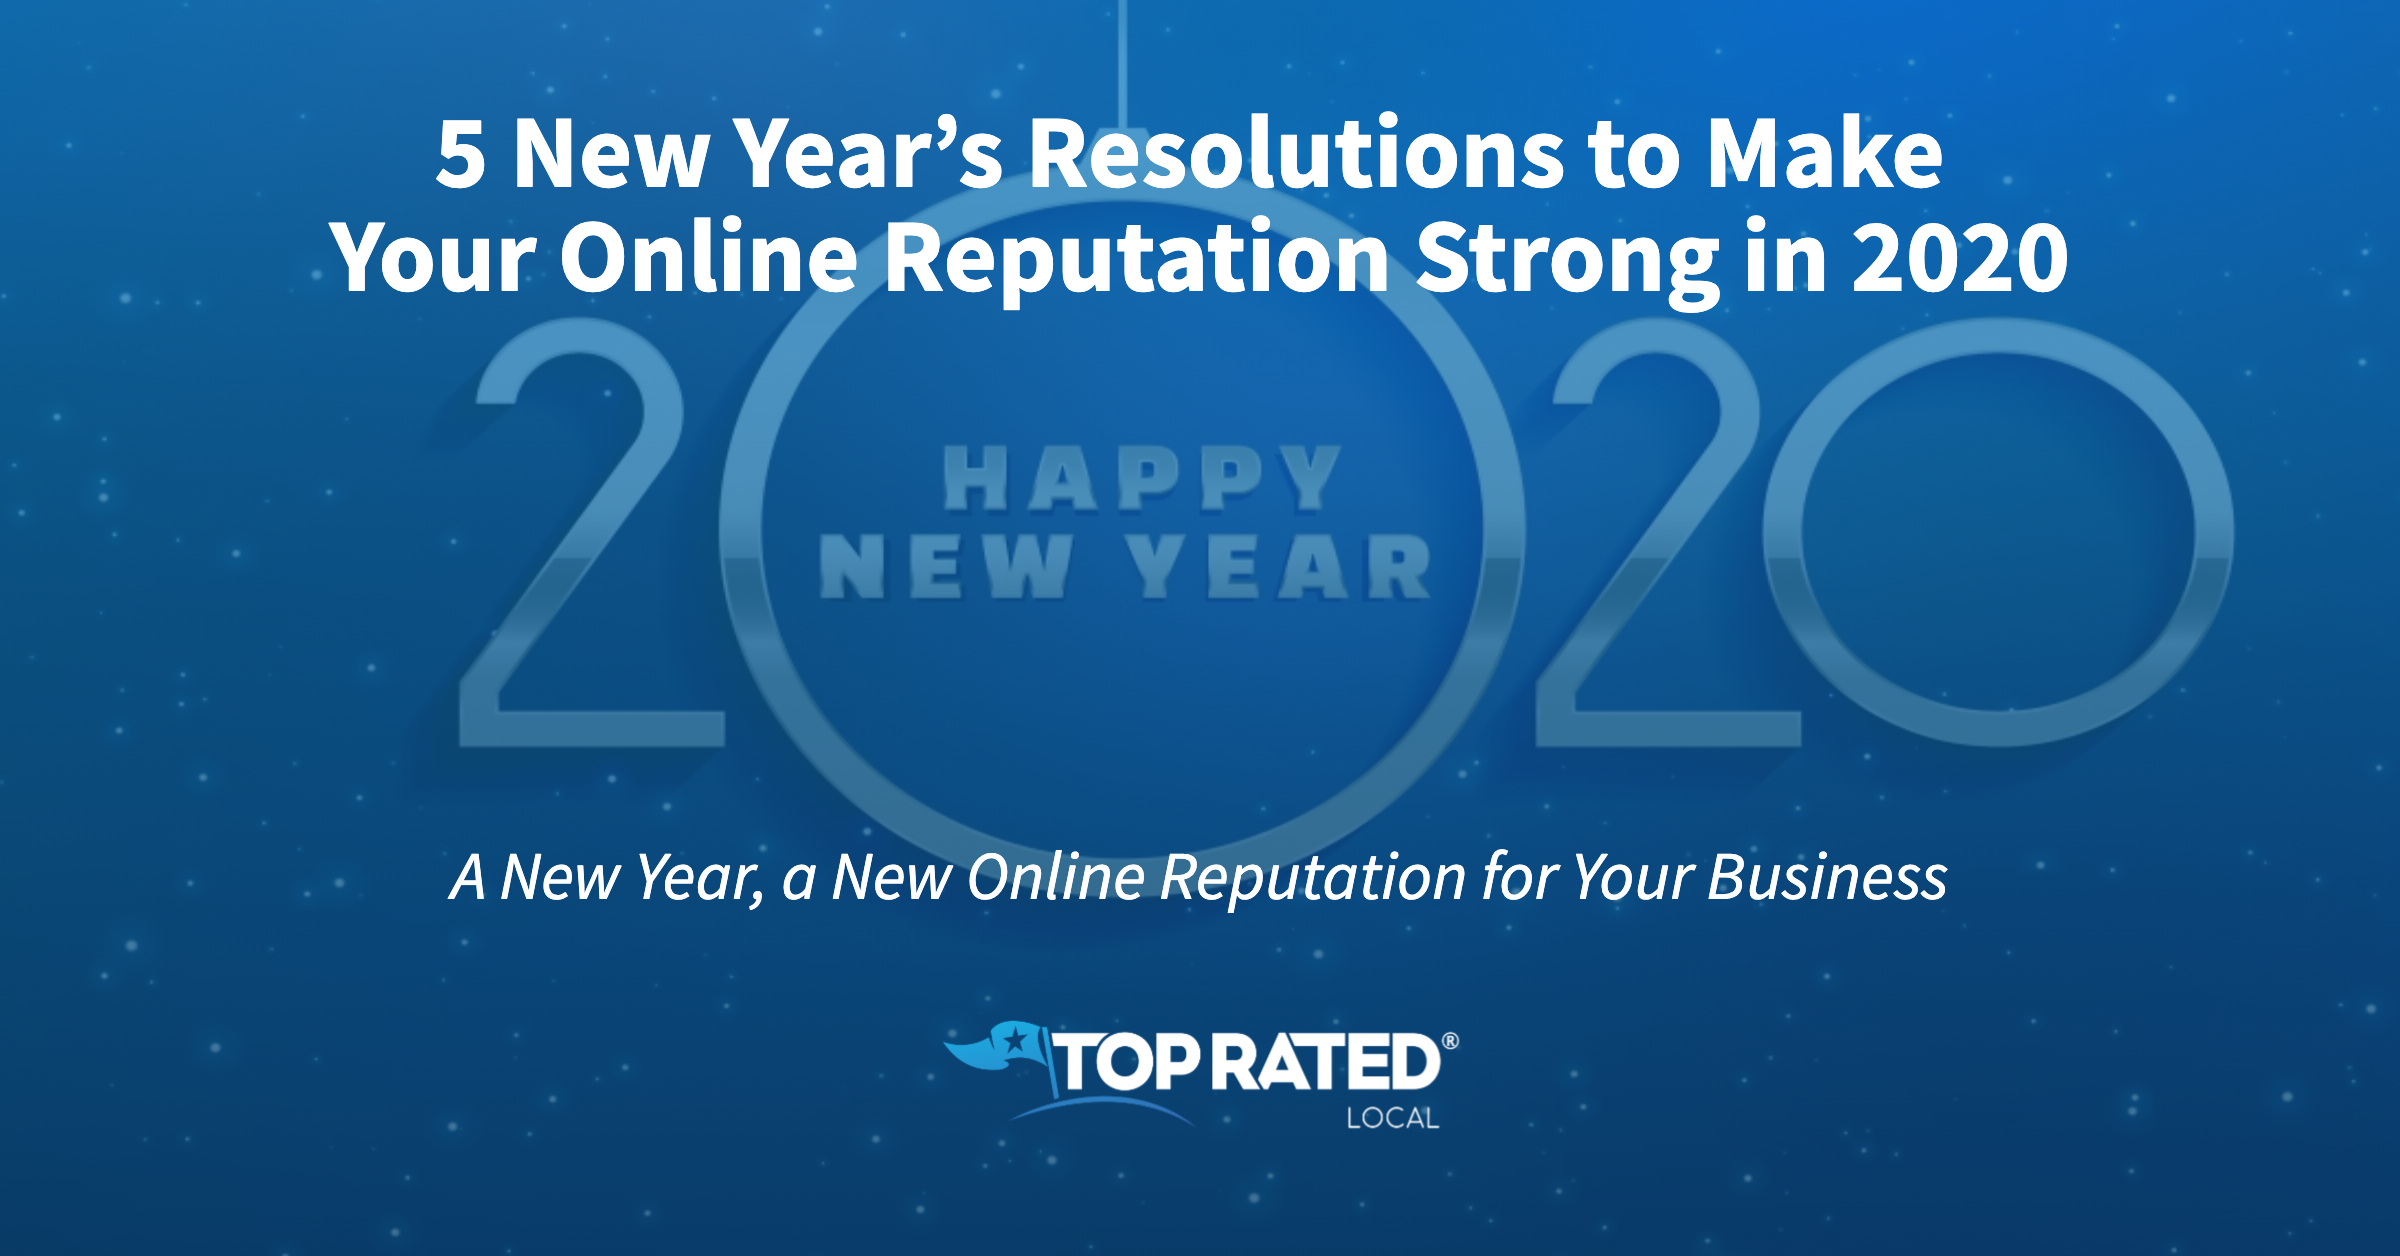 Resolutions for a Stronger Online Reputation in 2020